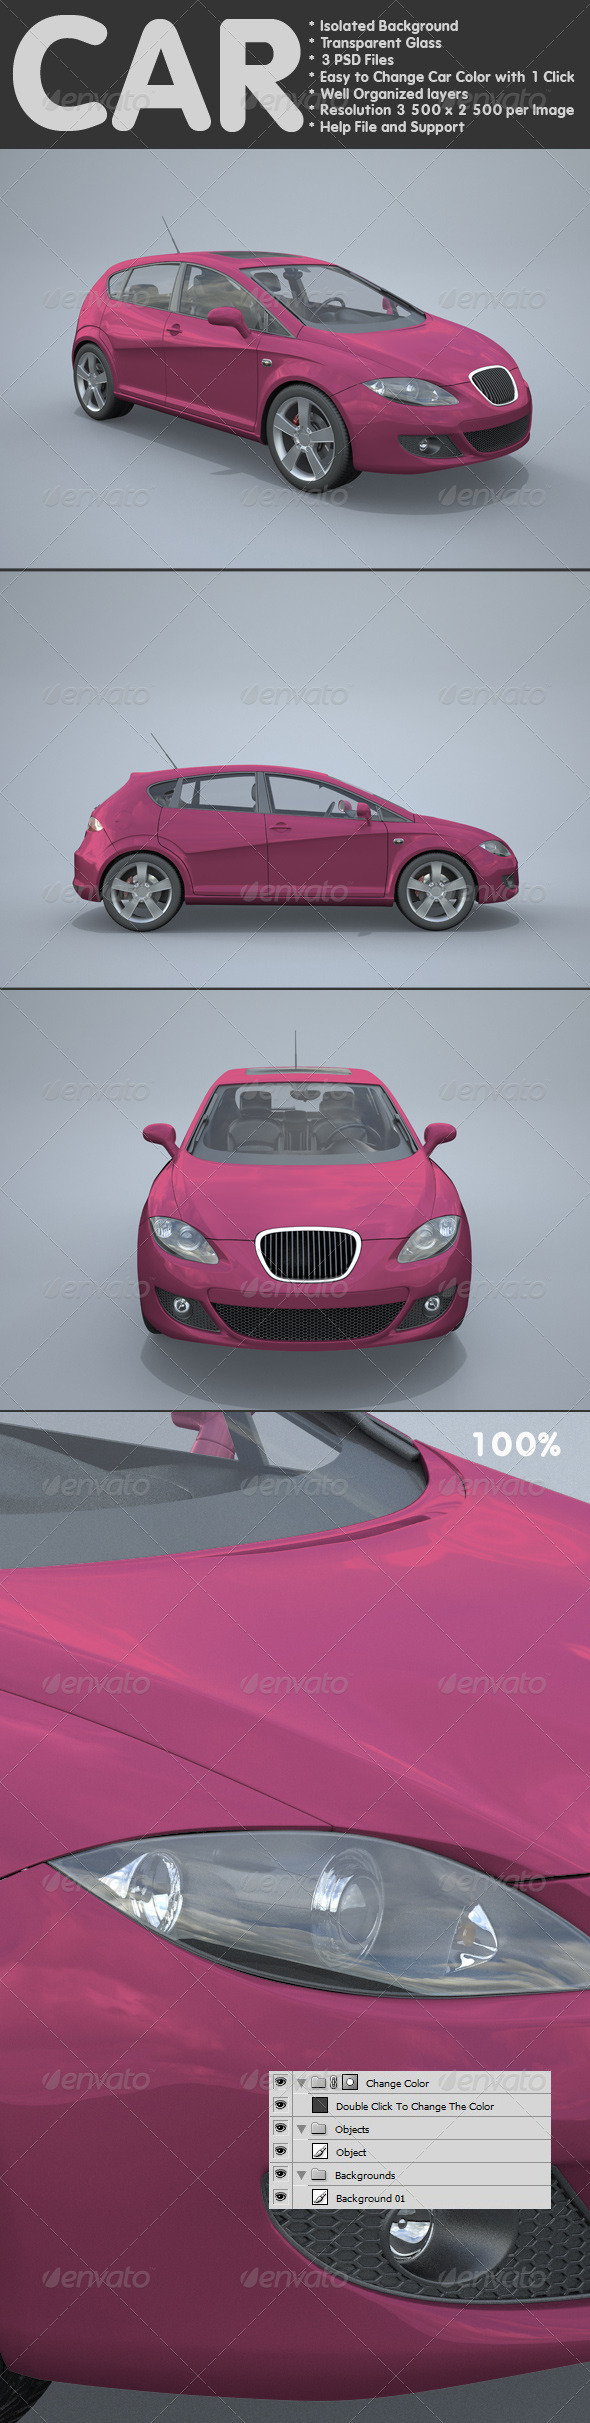 Car - Miscellaneous 3D Renders